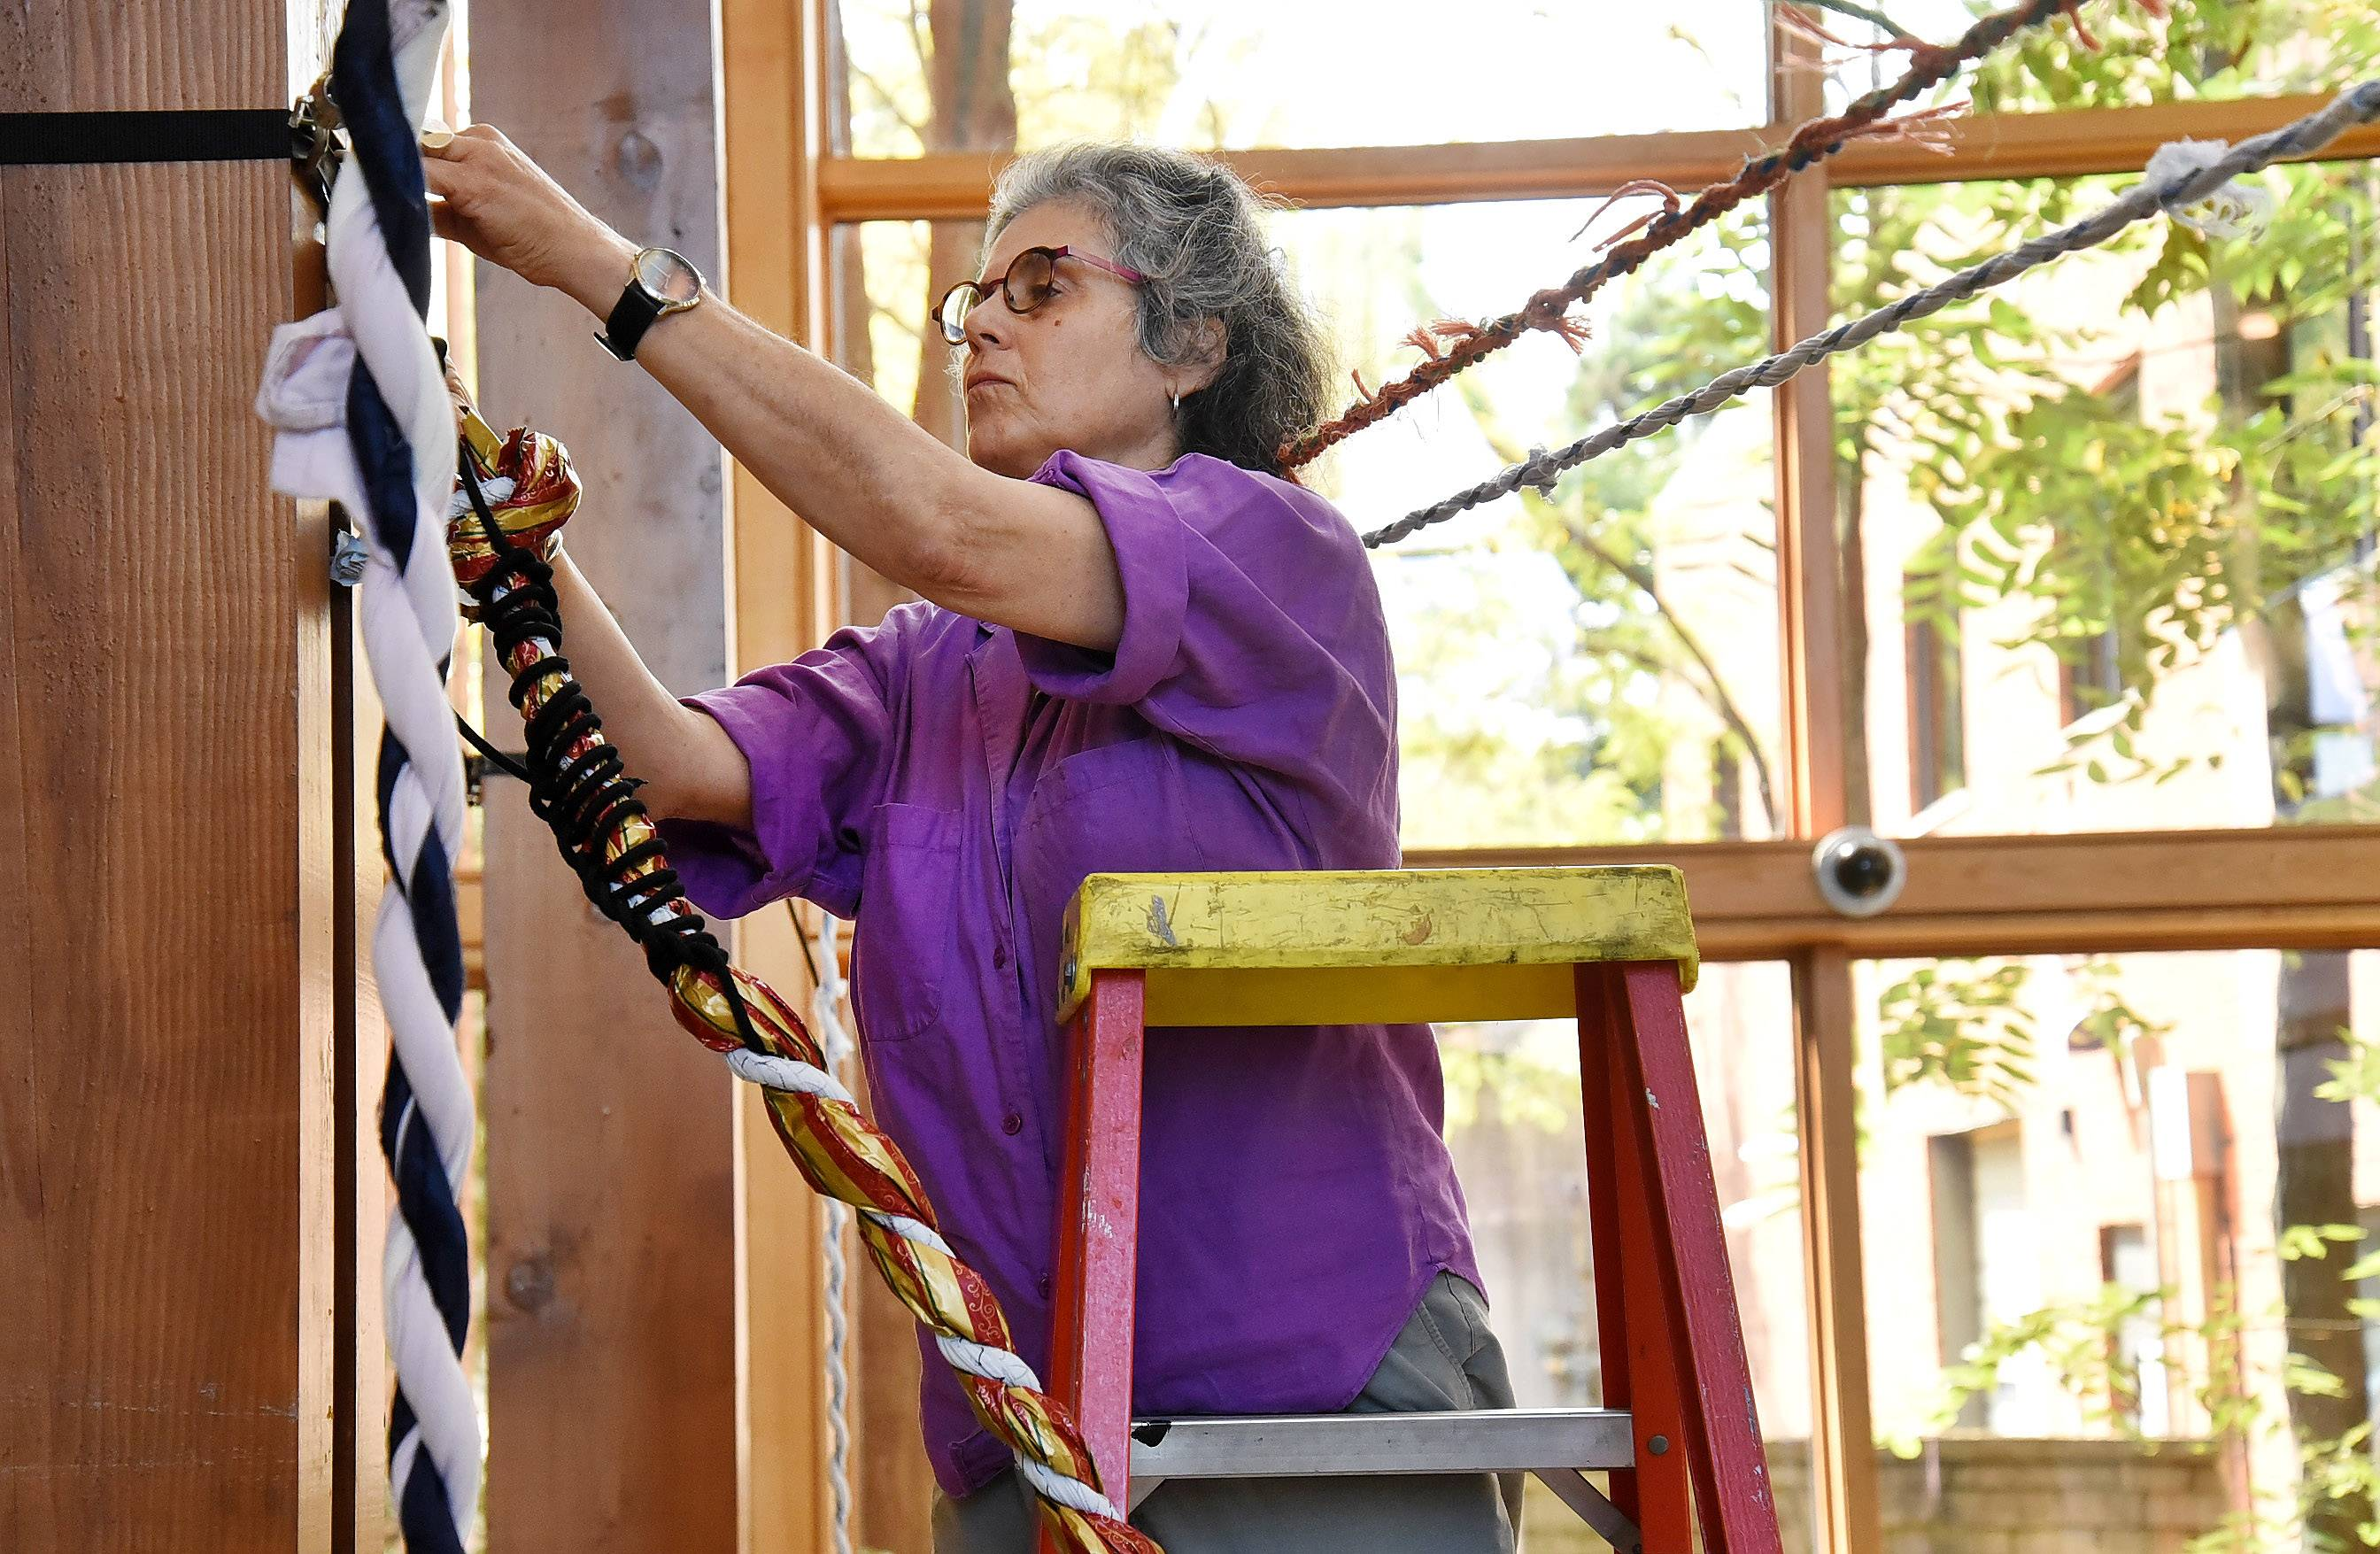 Chicago artist Barbara Cooper attaches sturdy ropes to the atrium's wooden pillars for an extensive web at Barrington Area Library.